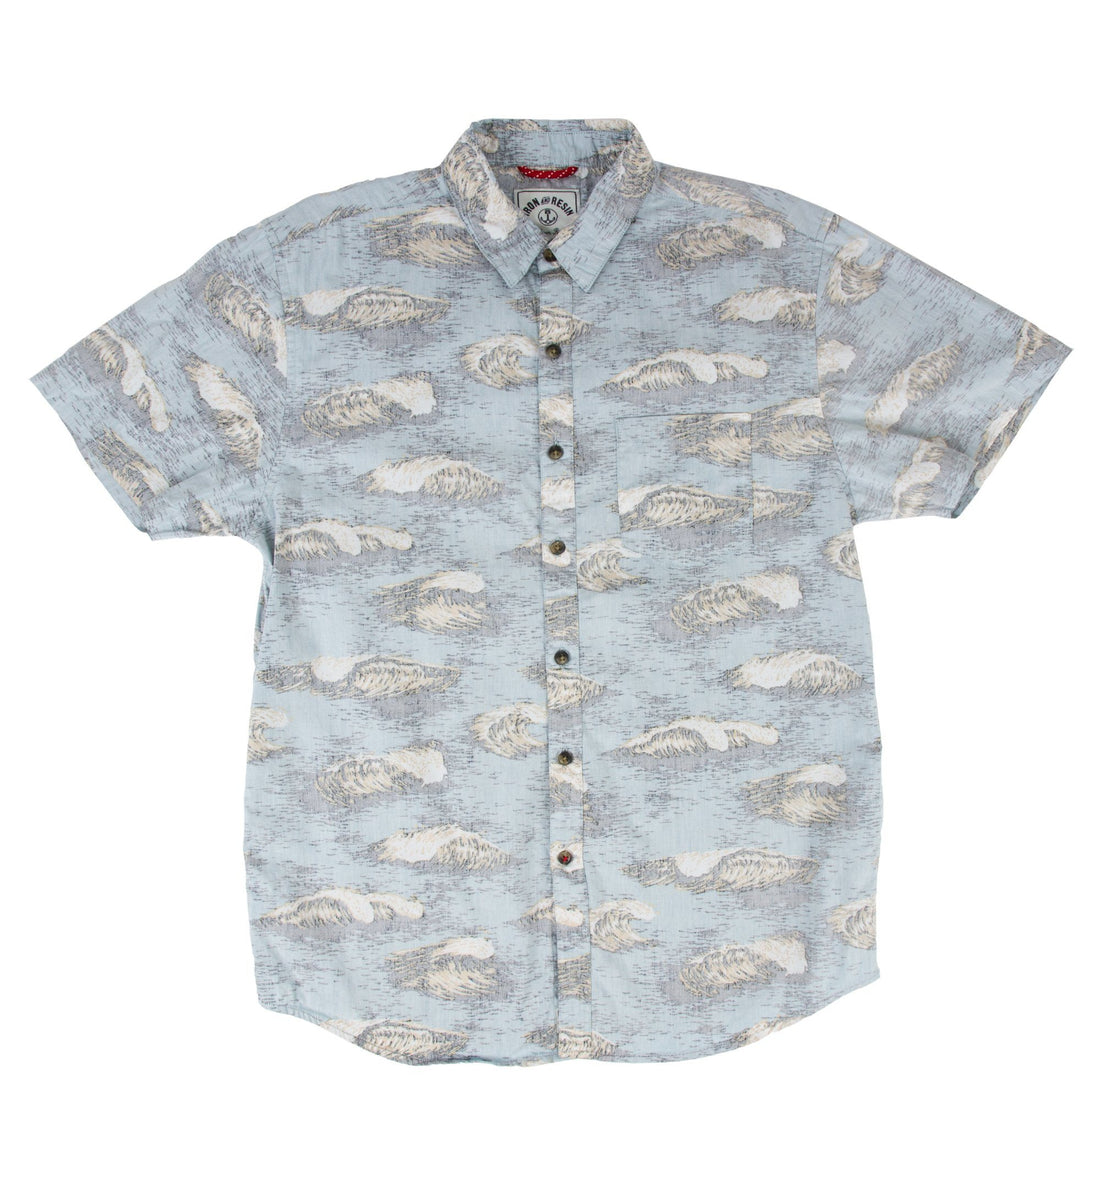 Haleiwa Shirt - Tops - Iron and Resin